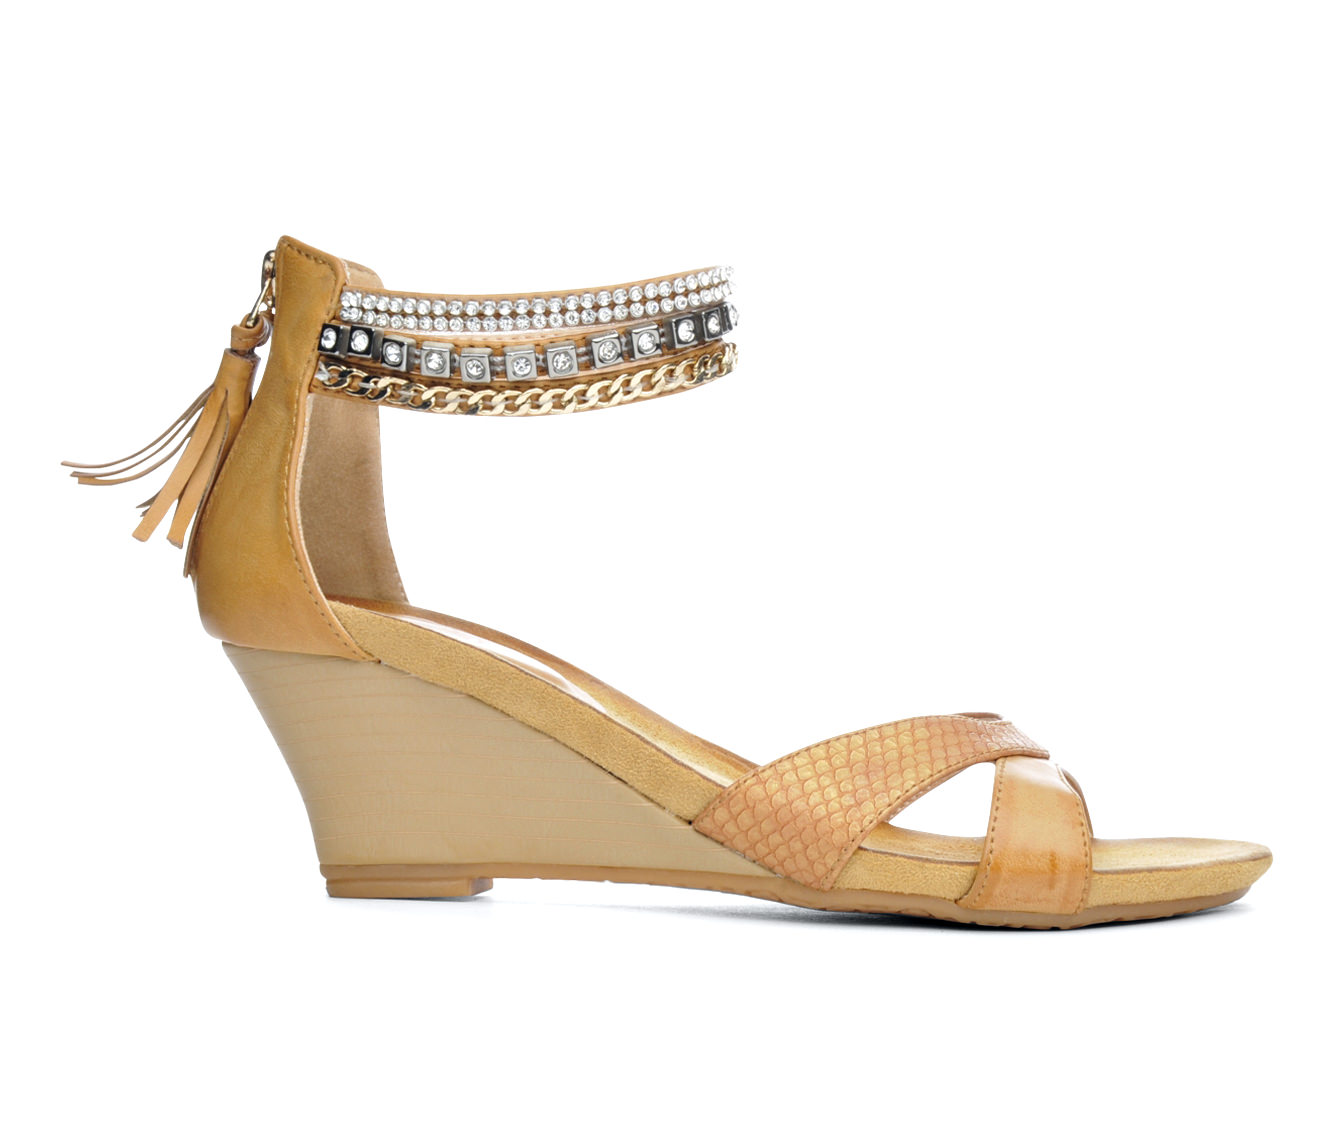 Women's Patrizia Rho Wedge Sandals (Beige)